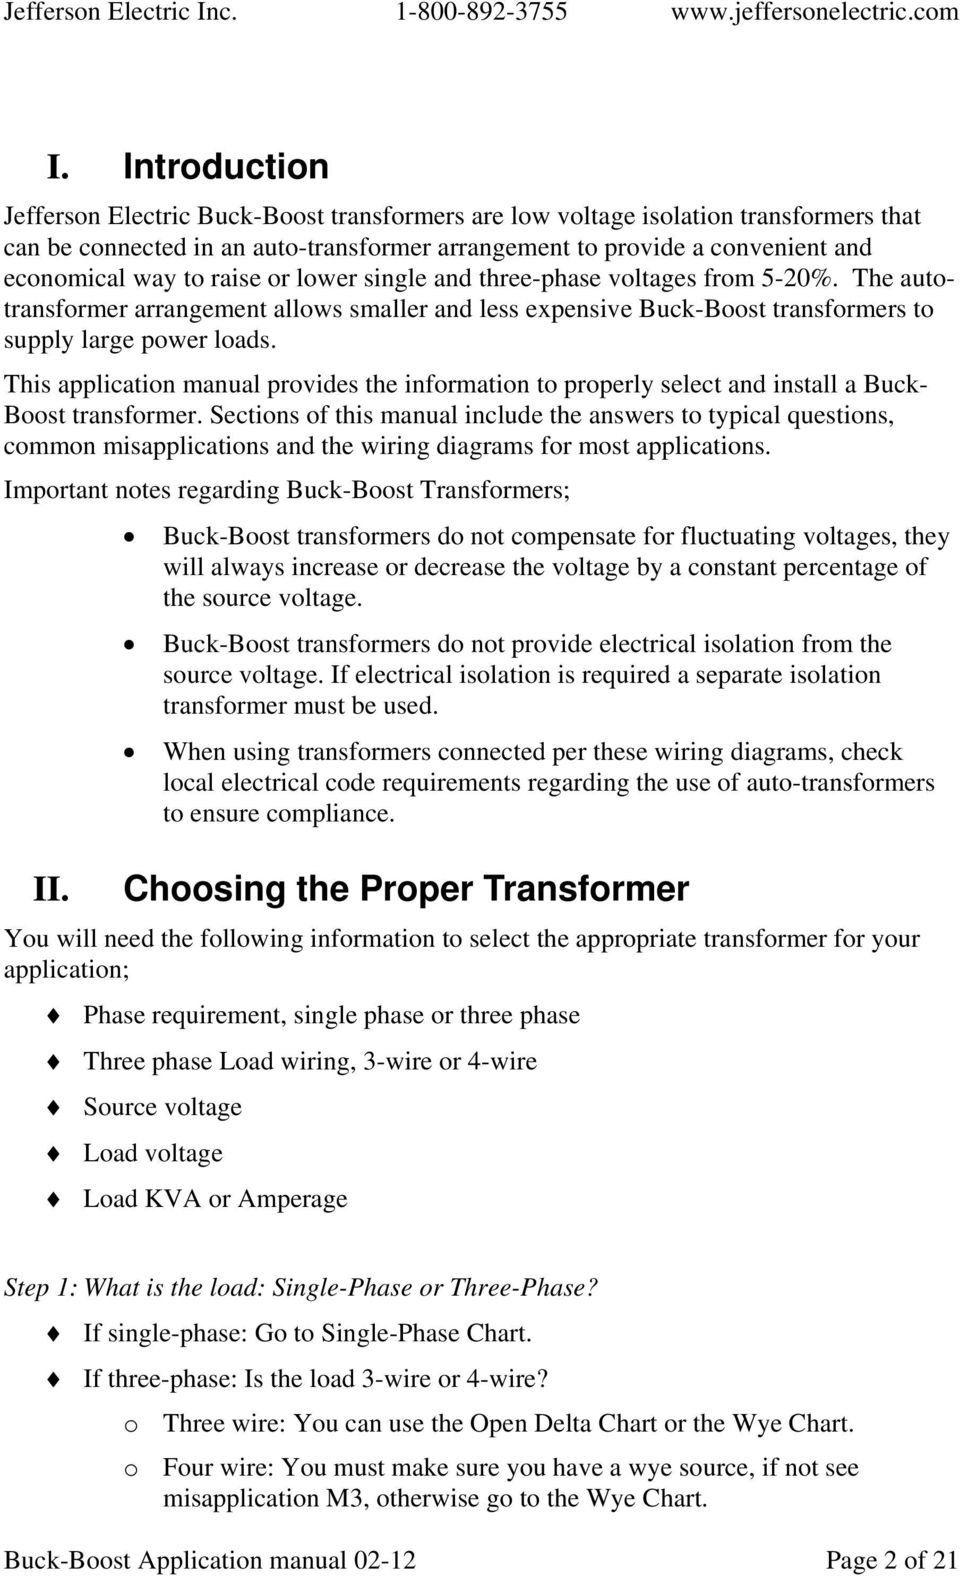 Jefferson Electric Inc Buck Boost Transformer Application Manual Pdf 3 Wire Wiring Diagram This Provides The Information To Properly Select And Install A